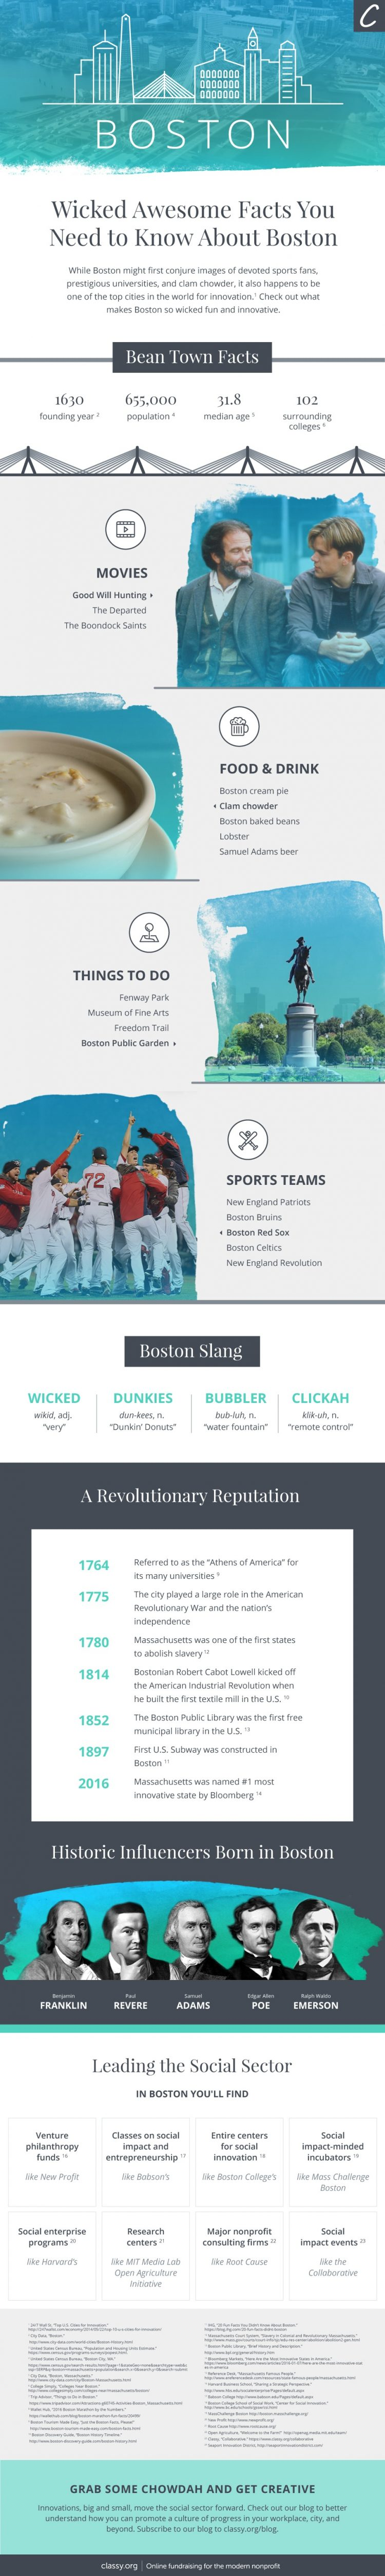 Boston Facts Infographic